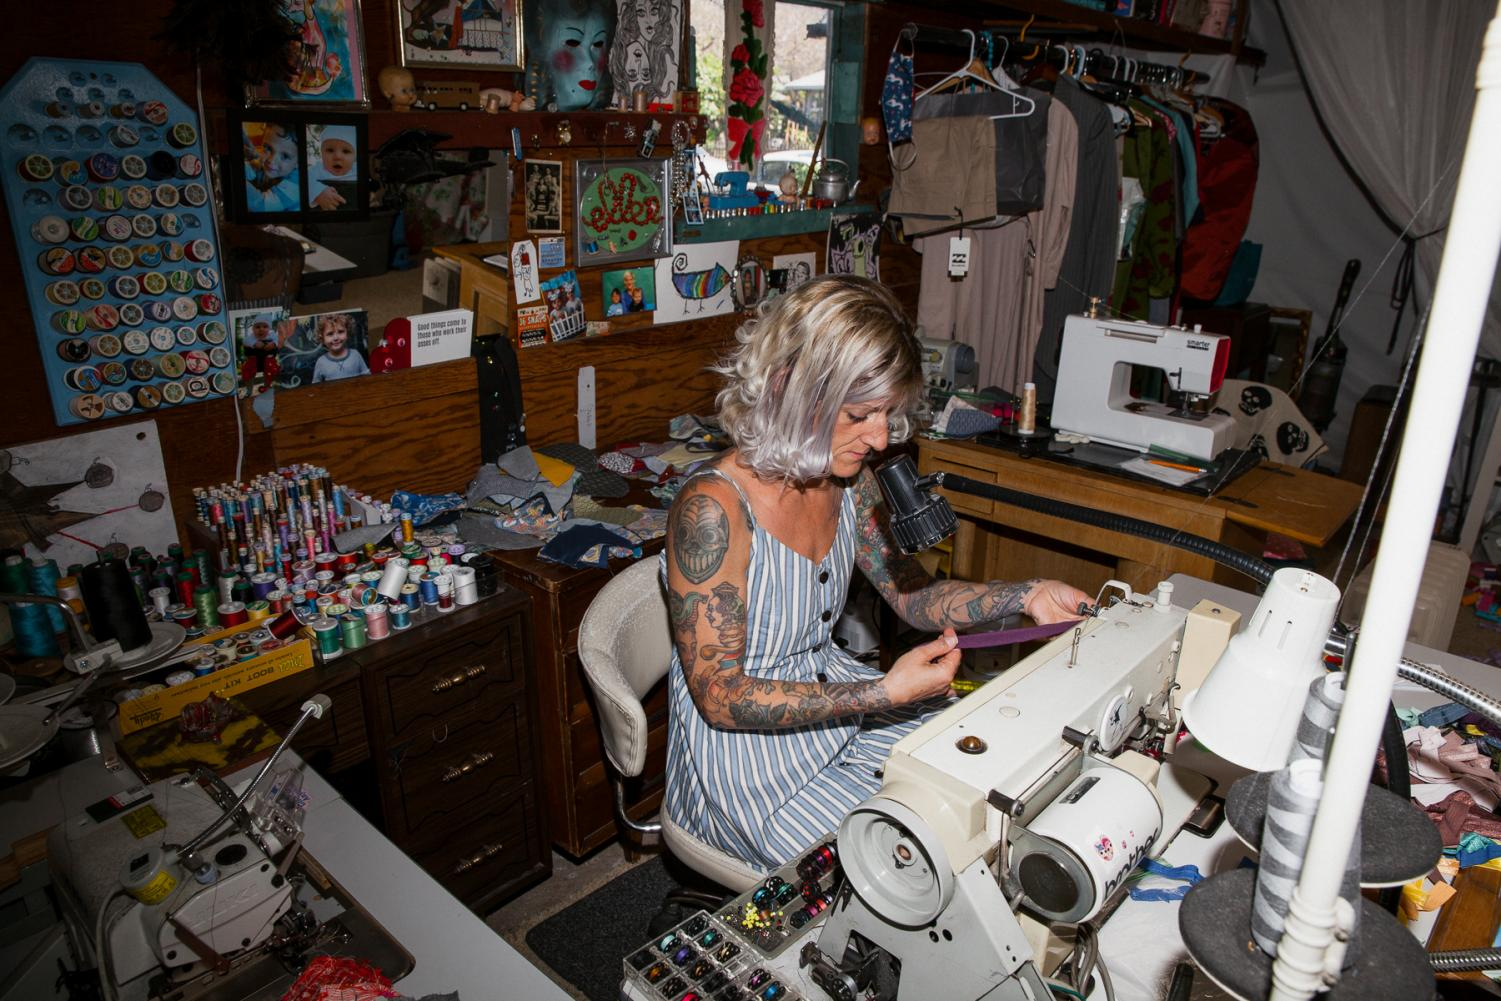 Ellen Beebe-Sztuck stitches face masks in her home workshop on Friday, April 24 behind her home in Downtown Santa Barbara, Calif. Beebe-Sztuck has recently shifted focus of her sewing and alteration business Stitch Witch to face coverings as the demand for masks steepens.